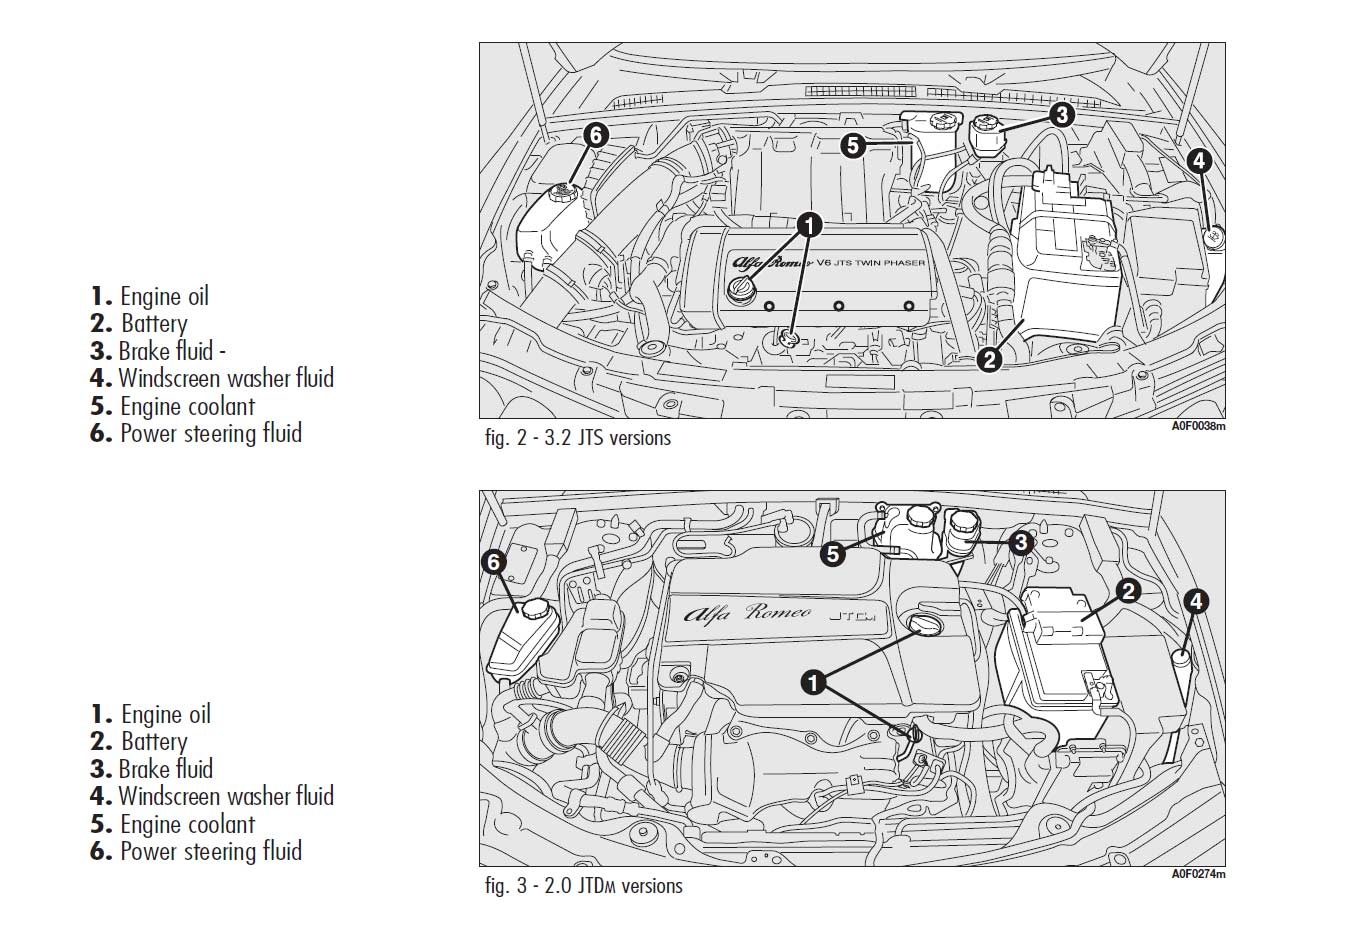 Location of the battery for Alfa Brera / Spider 3.2JTS and 2.0JTDm cars